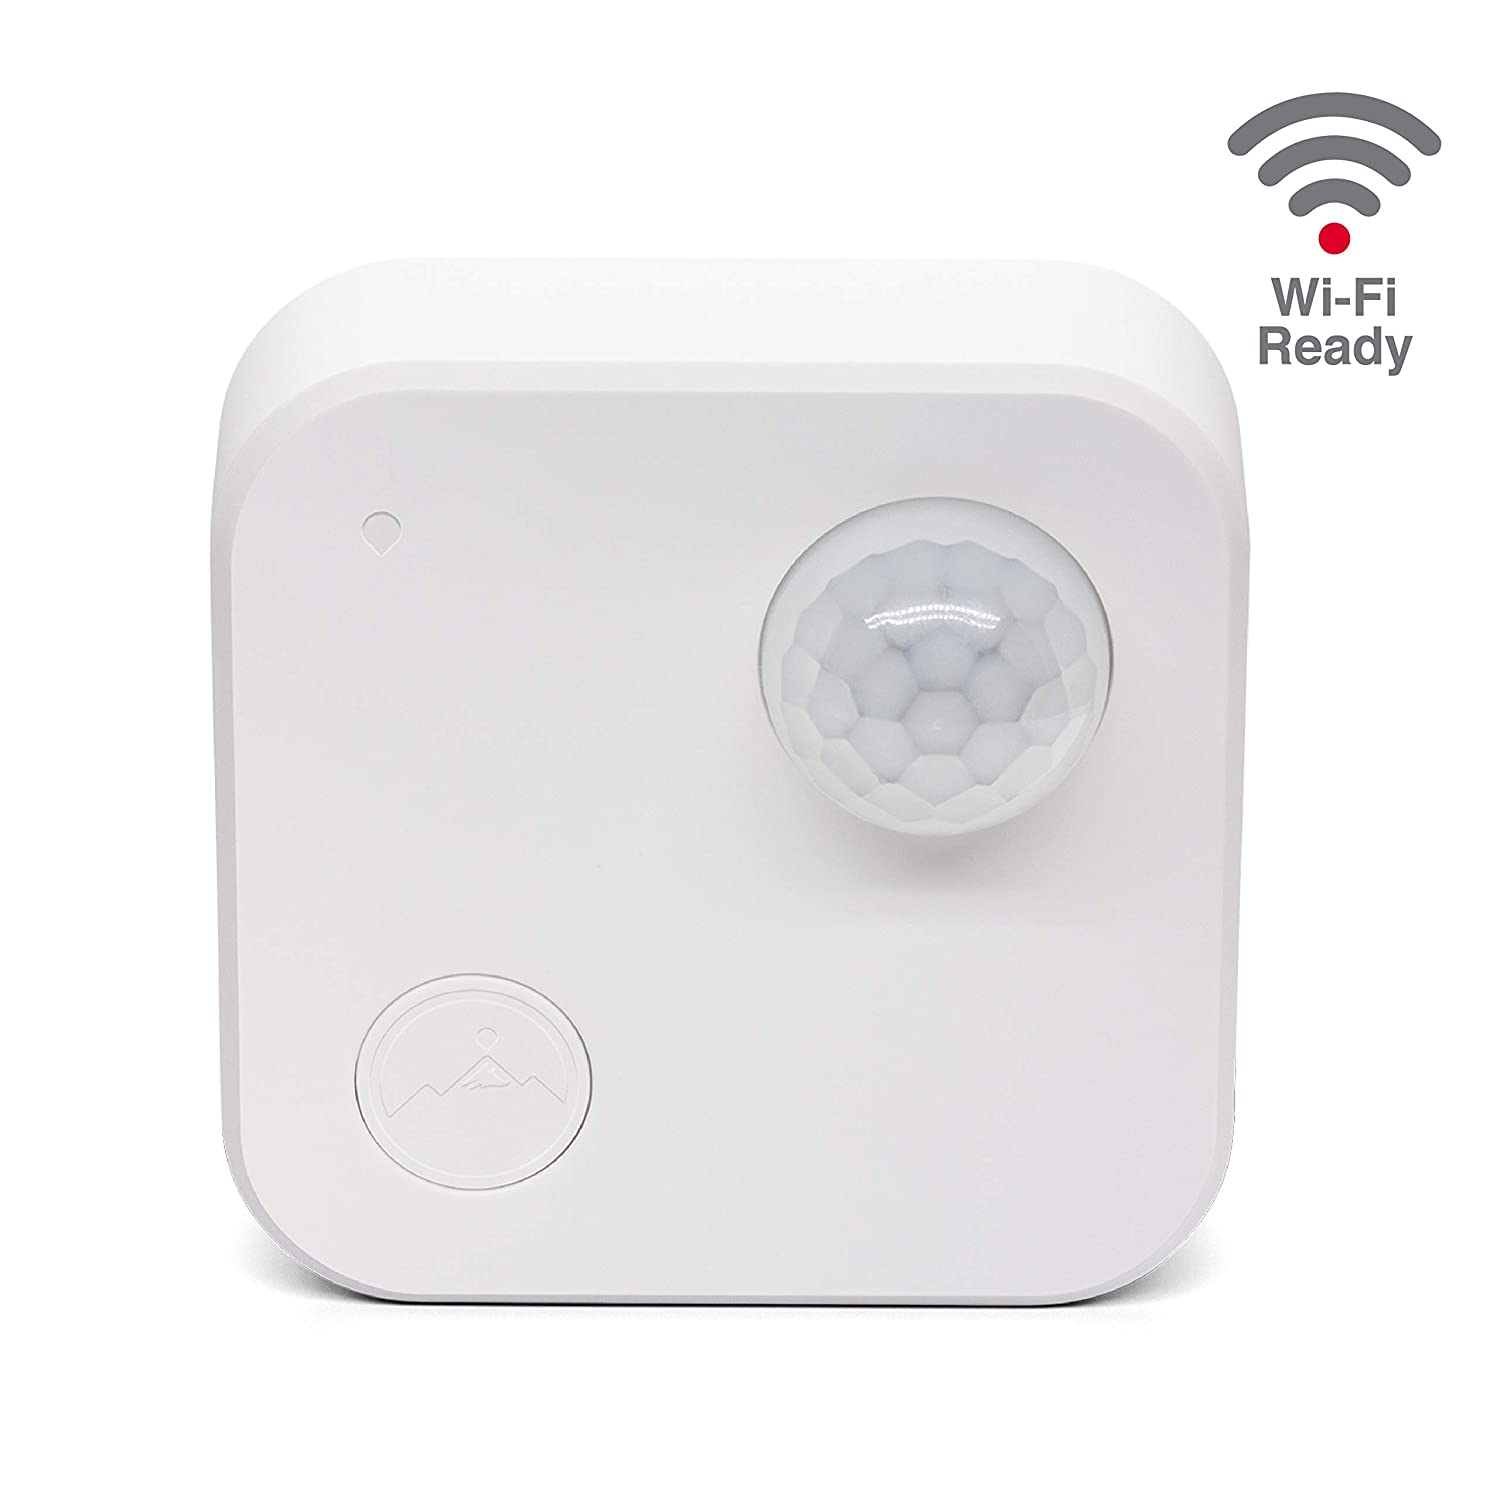 Fox Summit WiFi Indoor Motion Sensor, WiFi Enabled Battery Operated Smart Sensor, Home Security Motion Detector, No Hub Required